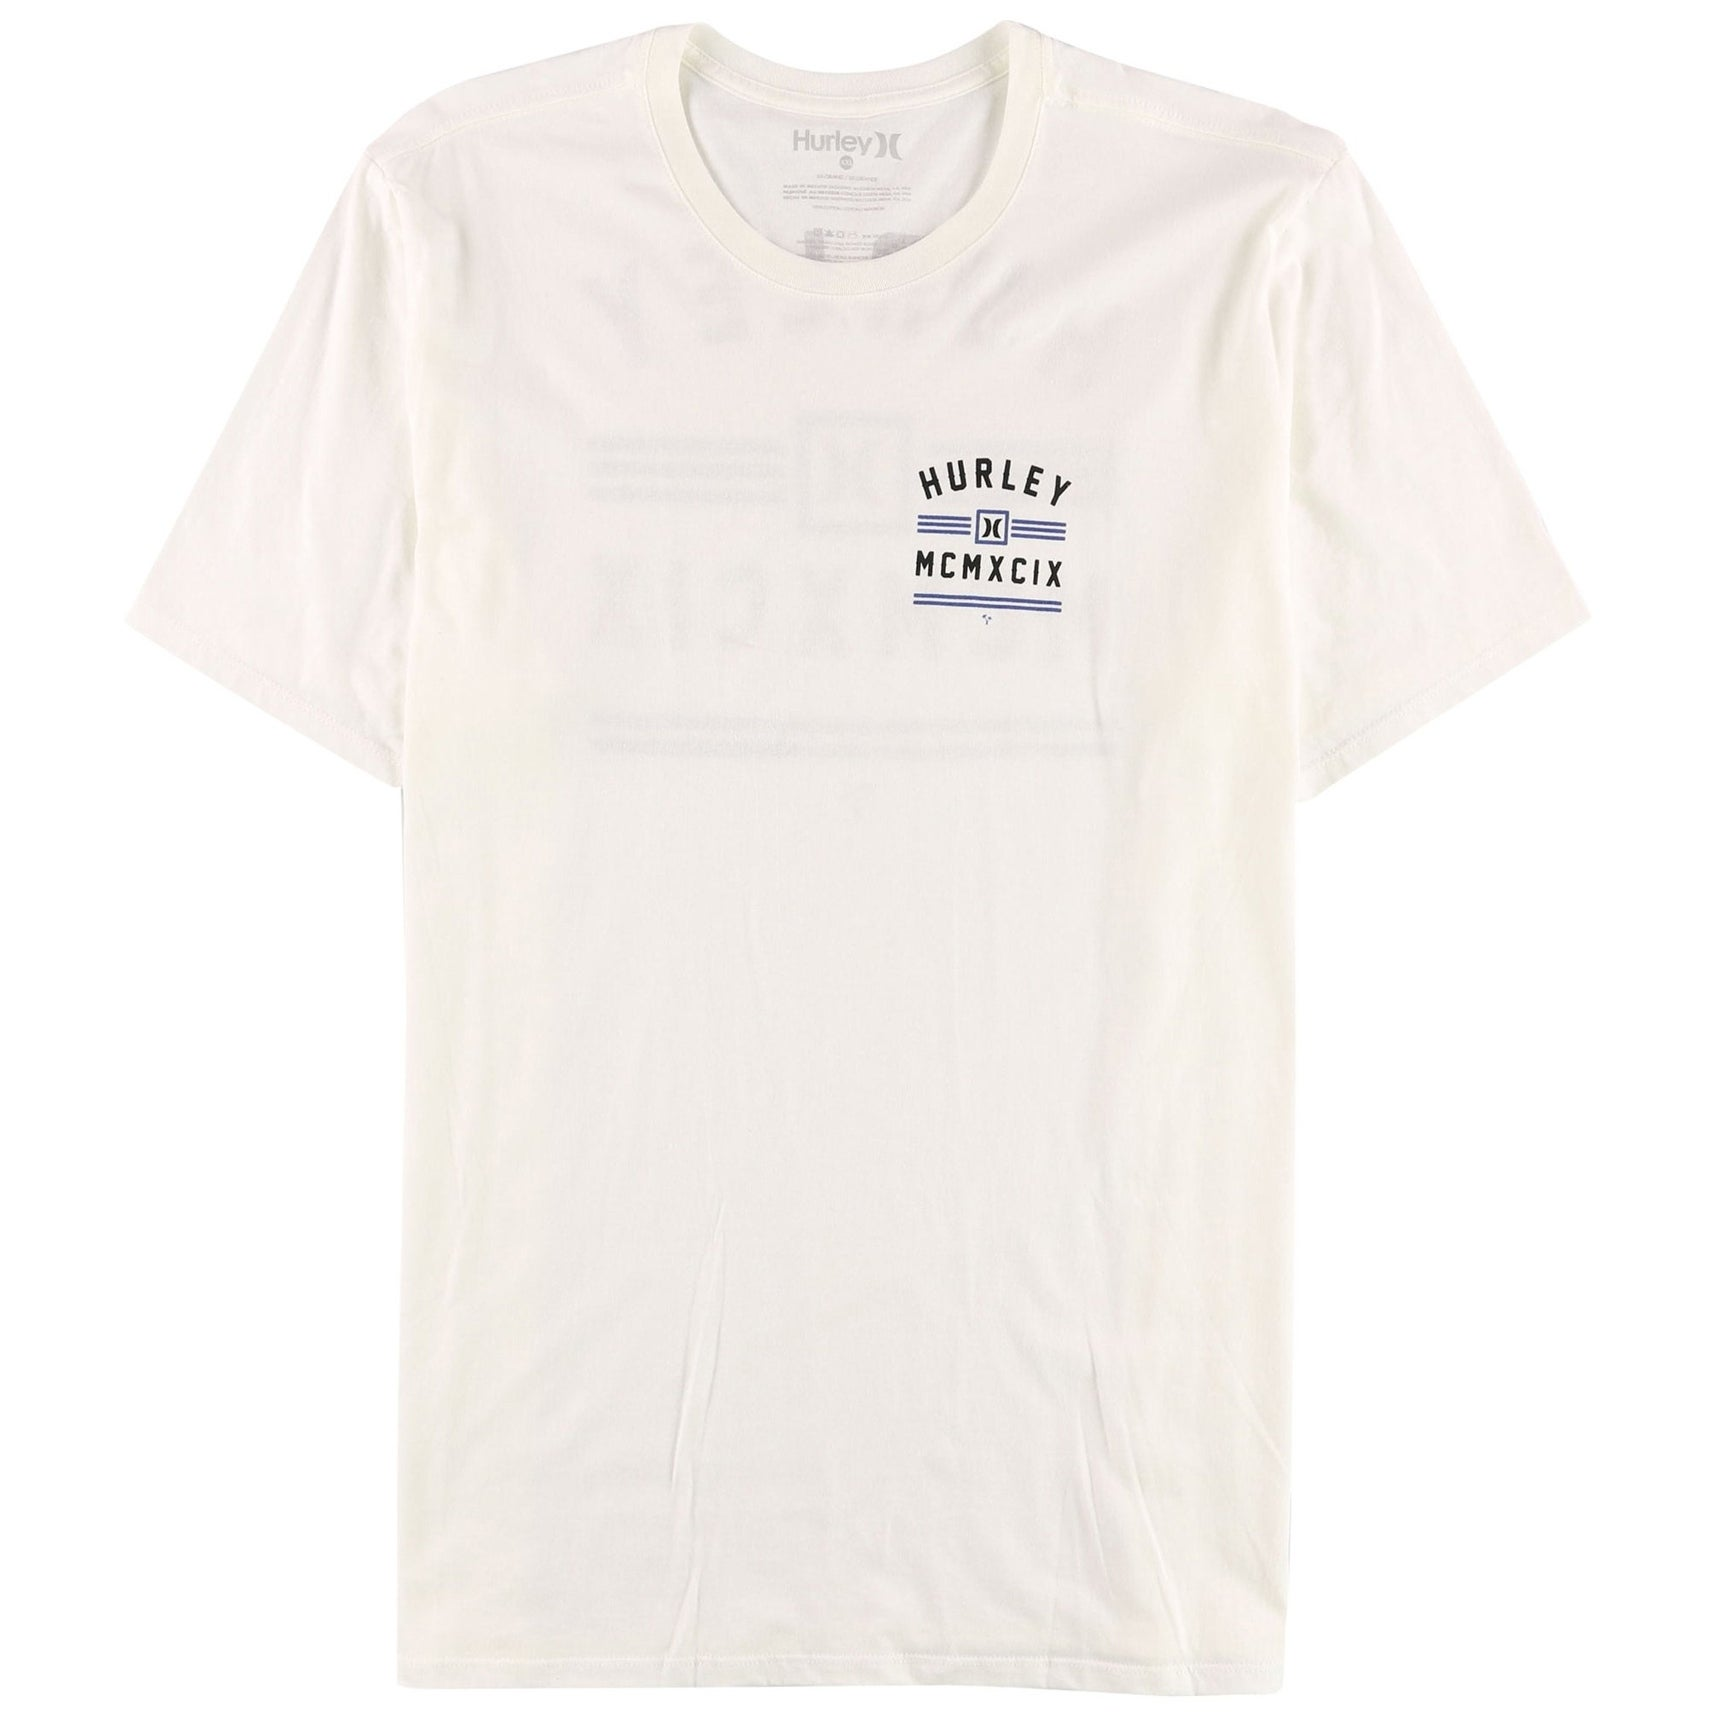 Shop Hurley New White Mens Size Xl Premium Mcmxcix Graphic Tee Shirt T Cotton Ships To Canada 21394918